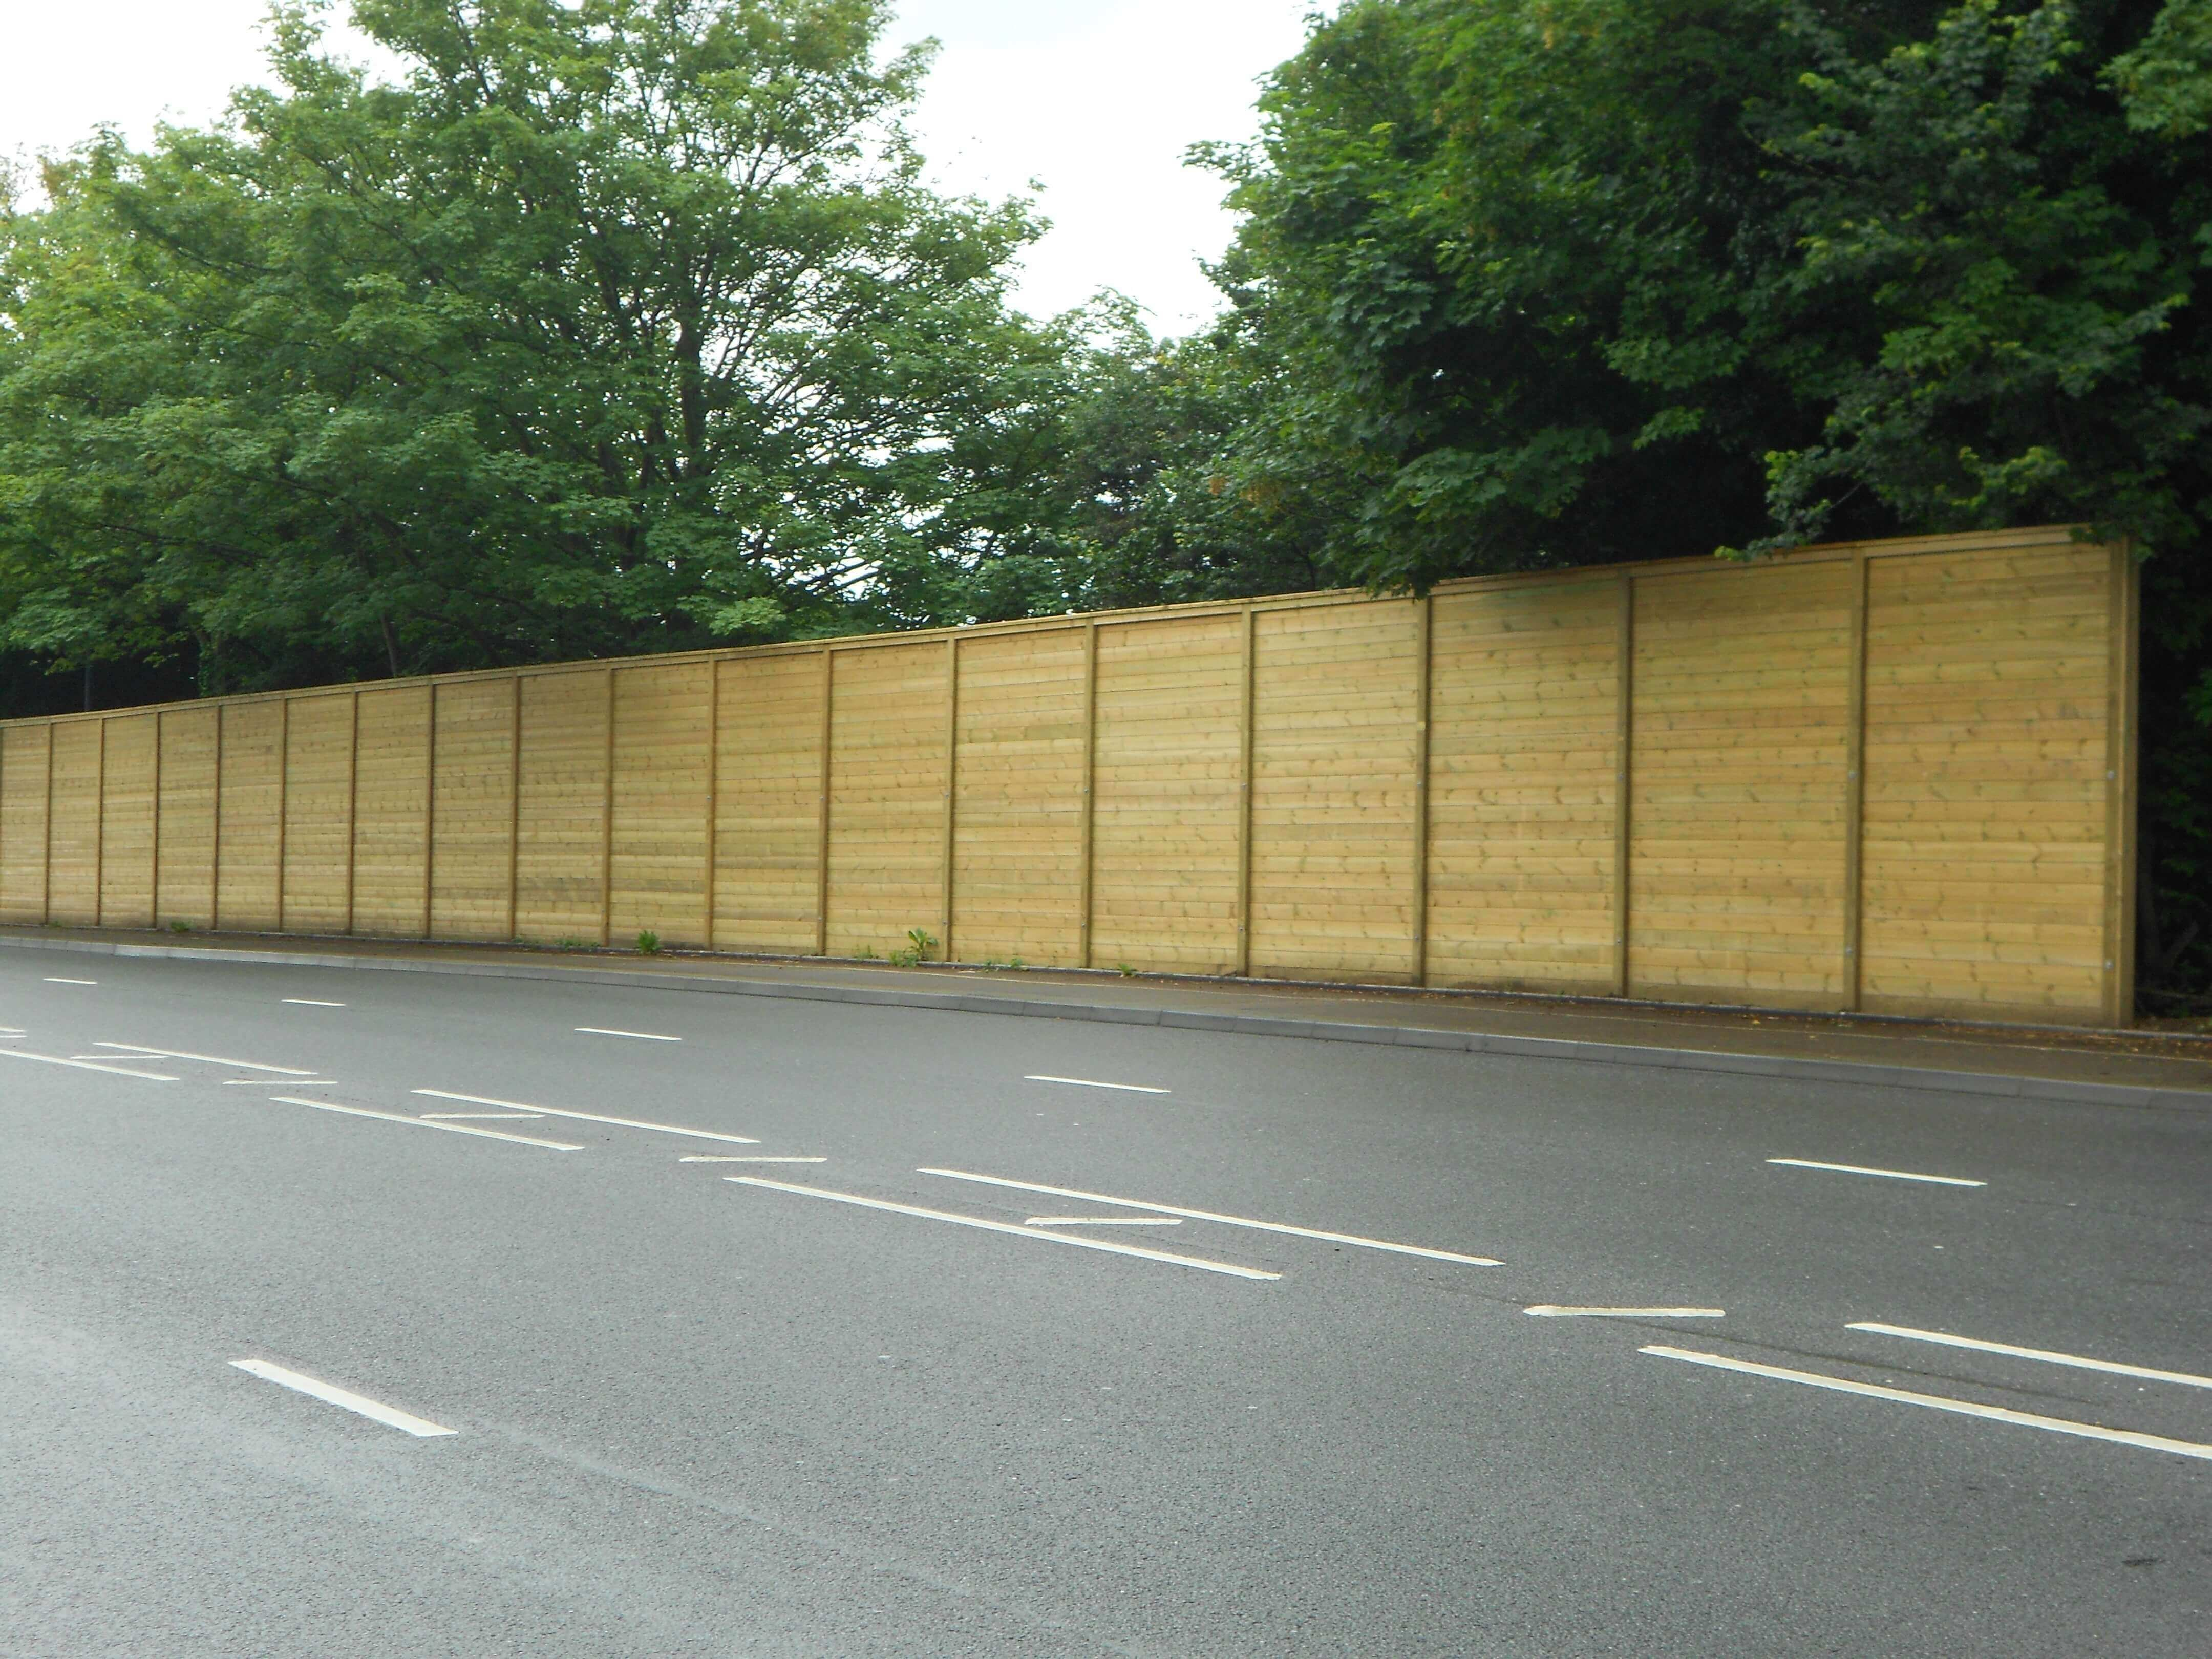 Acoustic fencing along road